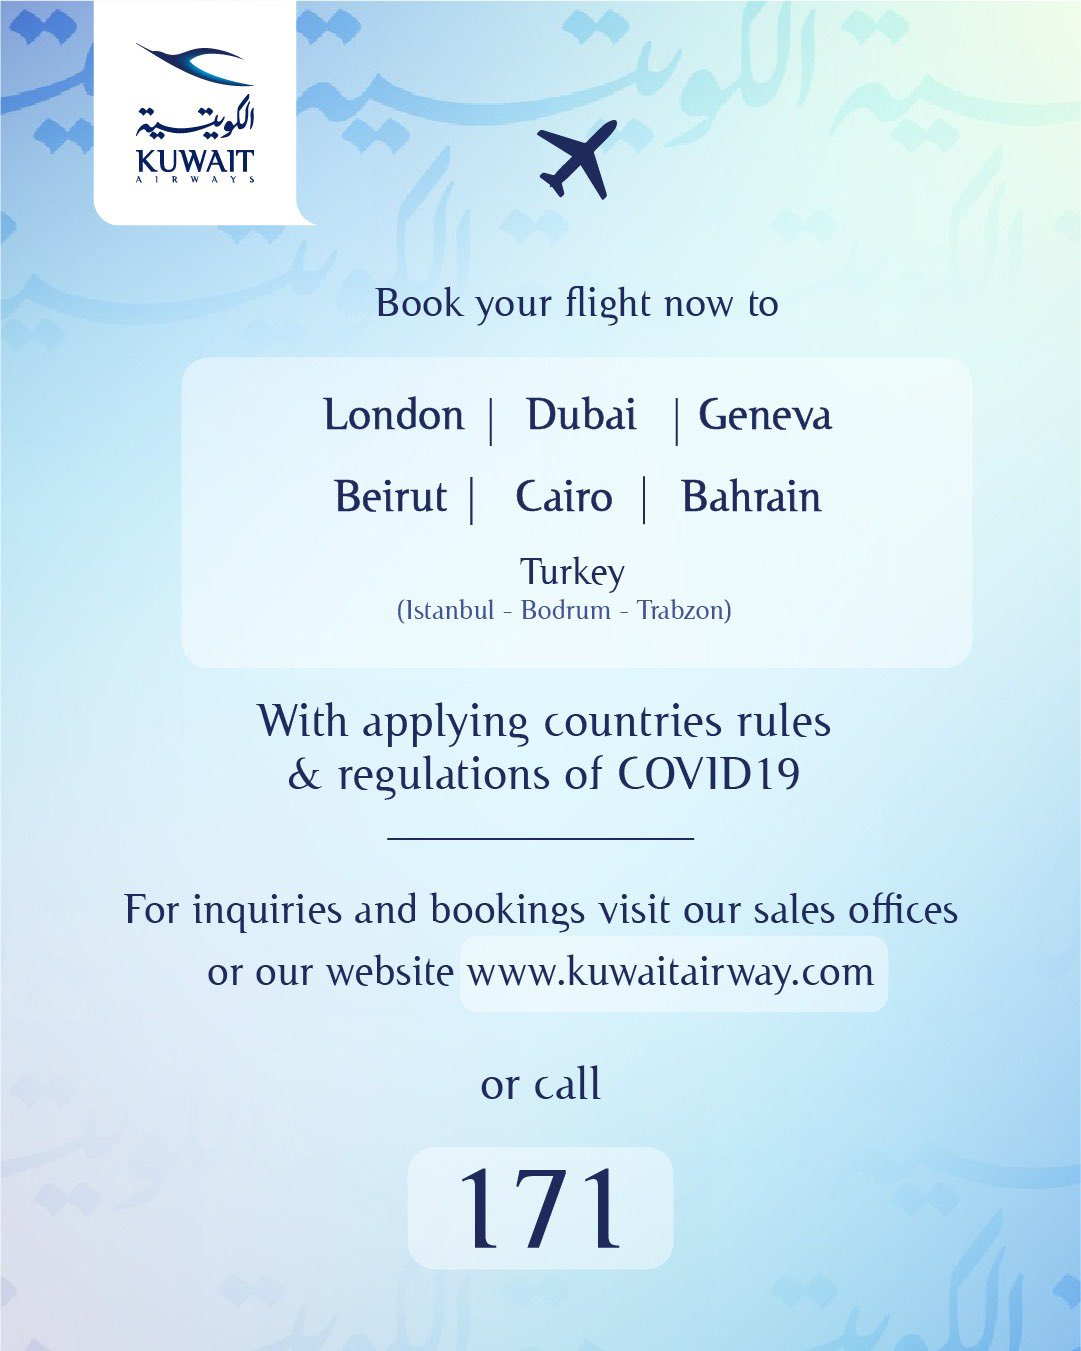 Kuwait Airways Flight Schedule